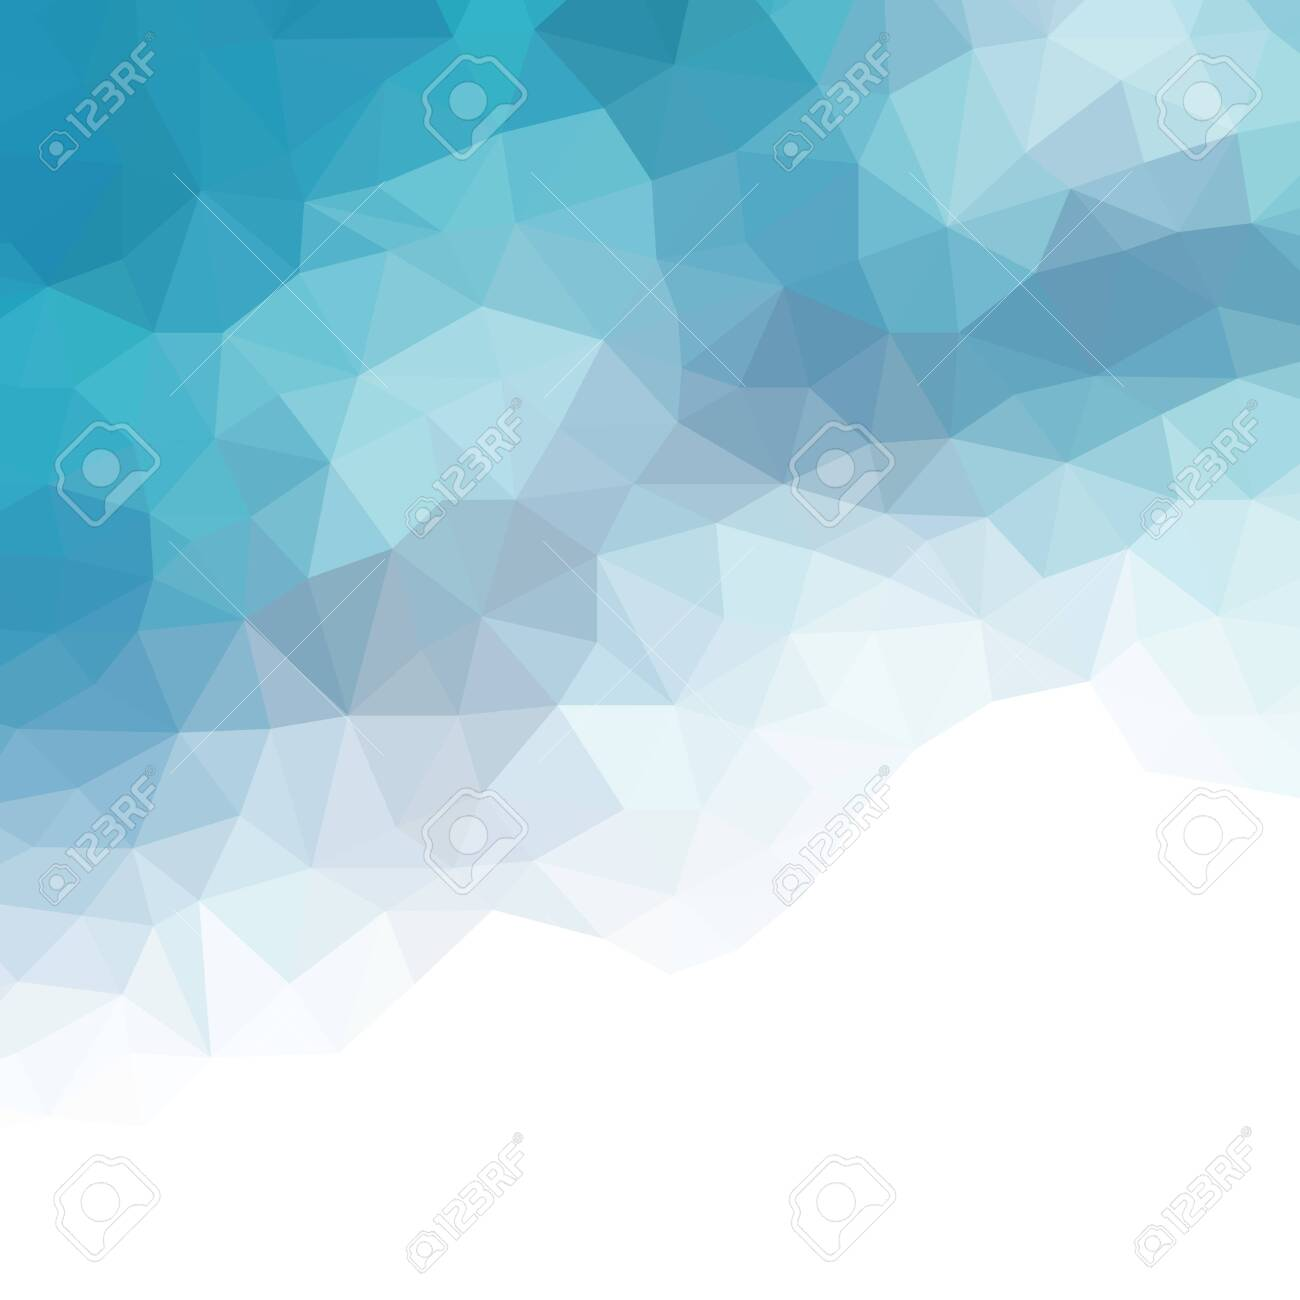 Water poly background. Vector Polygon Abstract modern Polygonal Geometric Triangle Background. Modern low poly abstract halftone triangular background - 120904728